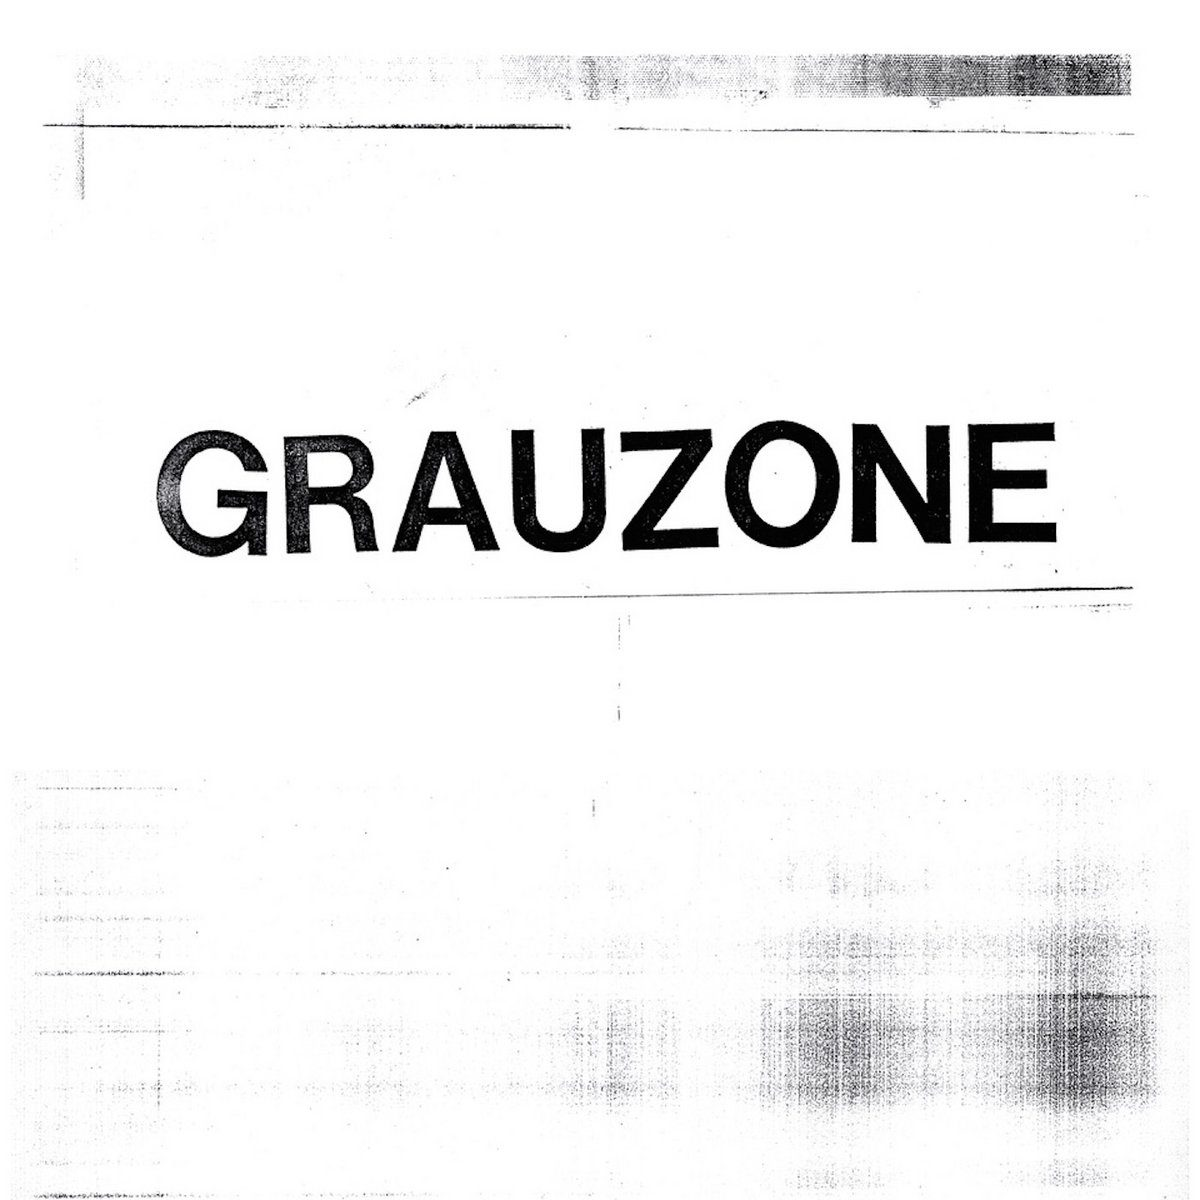 Grauzone see debut (and only) album 'Grauzone (D No. 37)' re-released as 40th anniversary edition